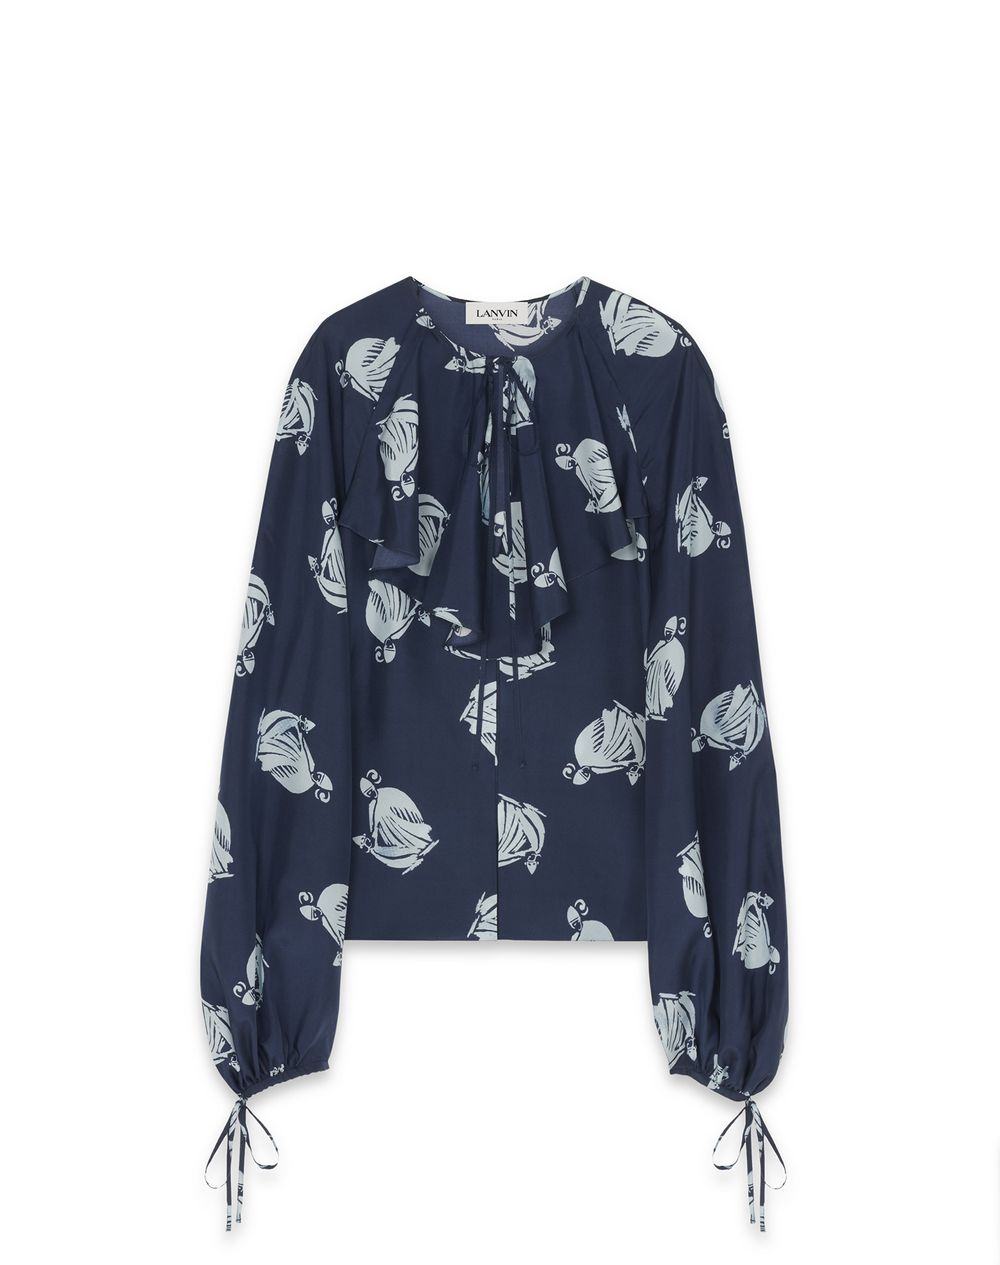 MOTHER AND CHILD LOGO SILK BLOUSE - Lanvin